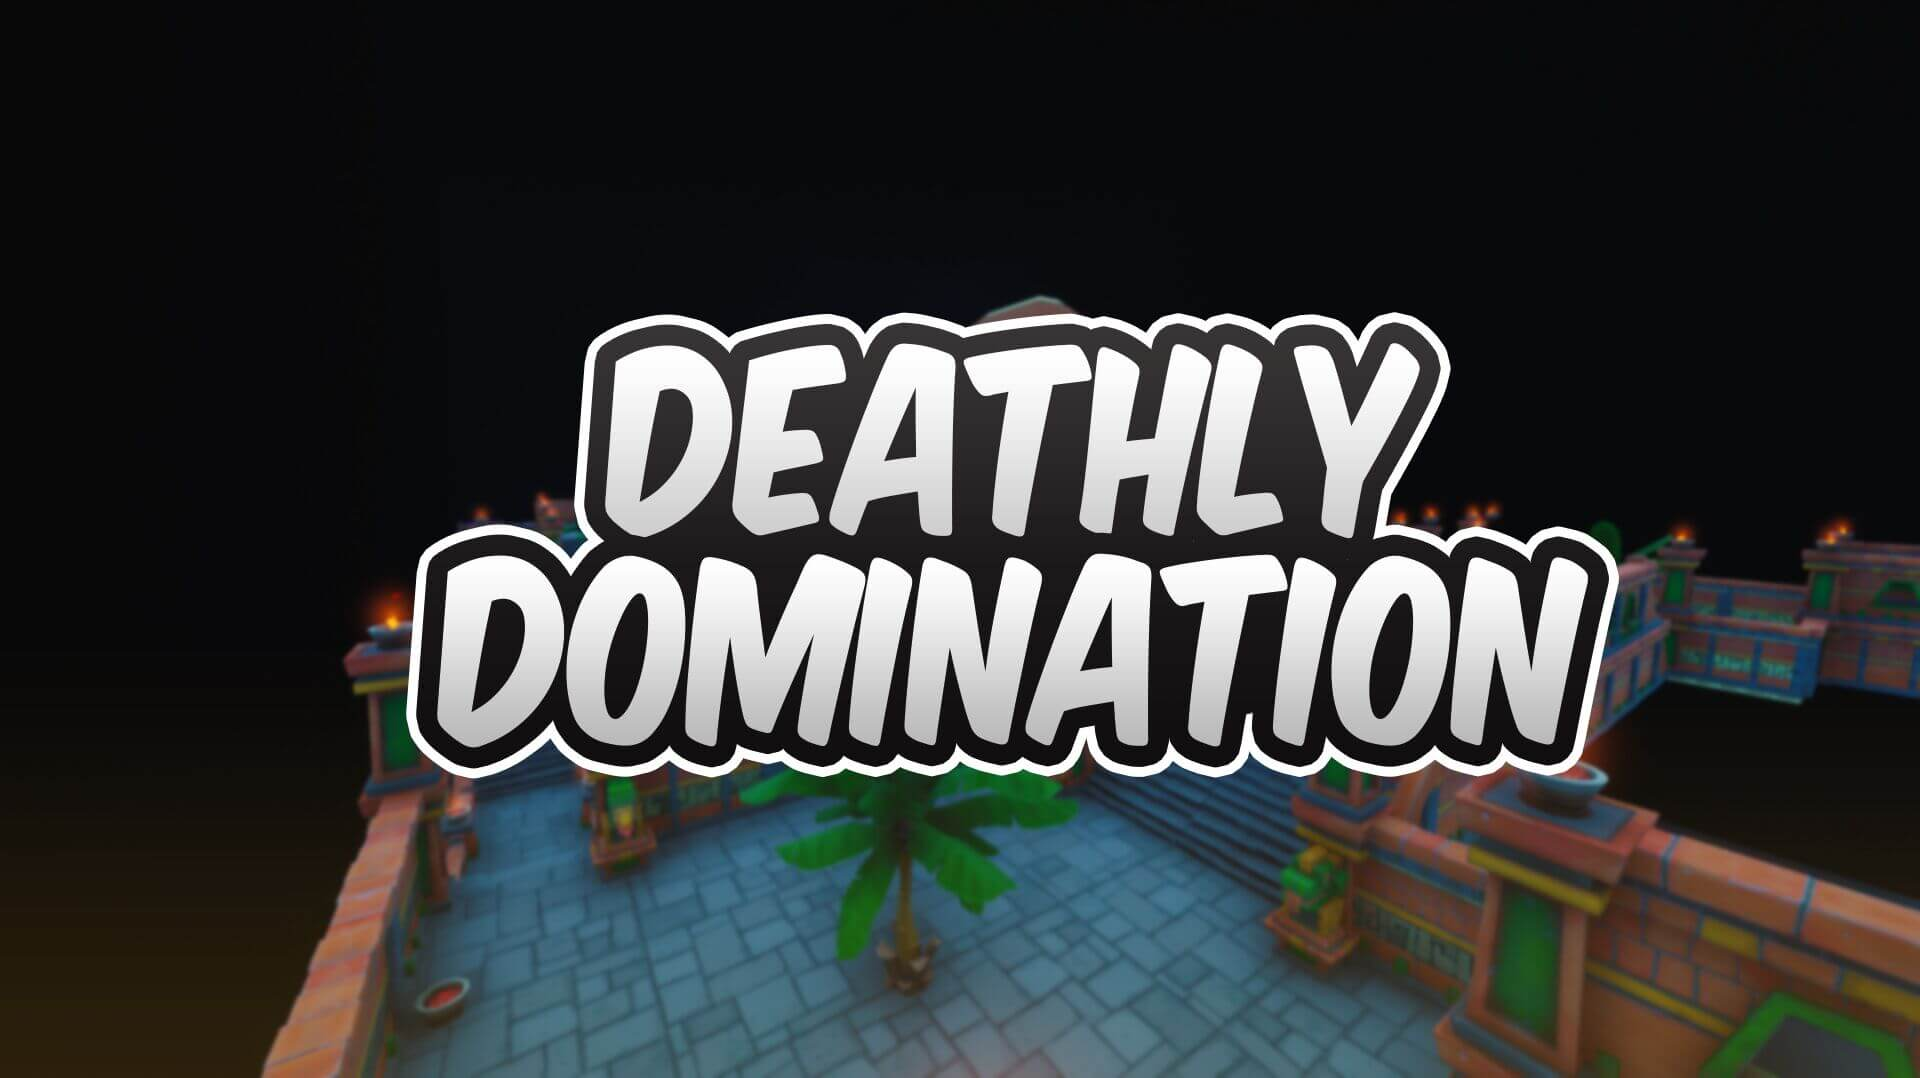 DEATHLY DOMINATION